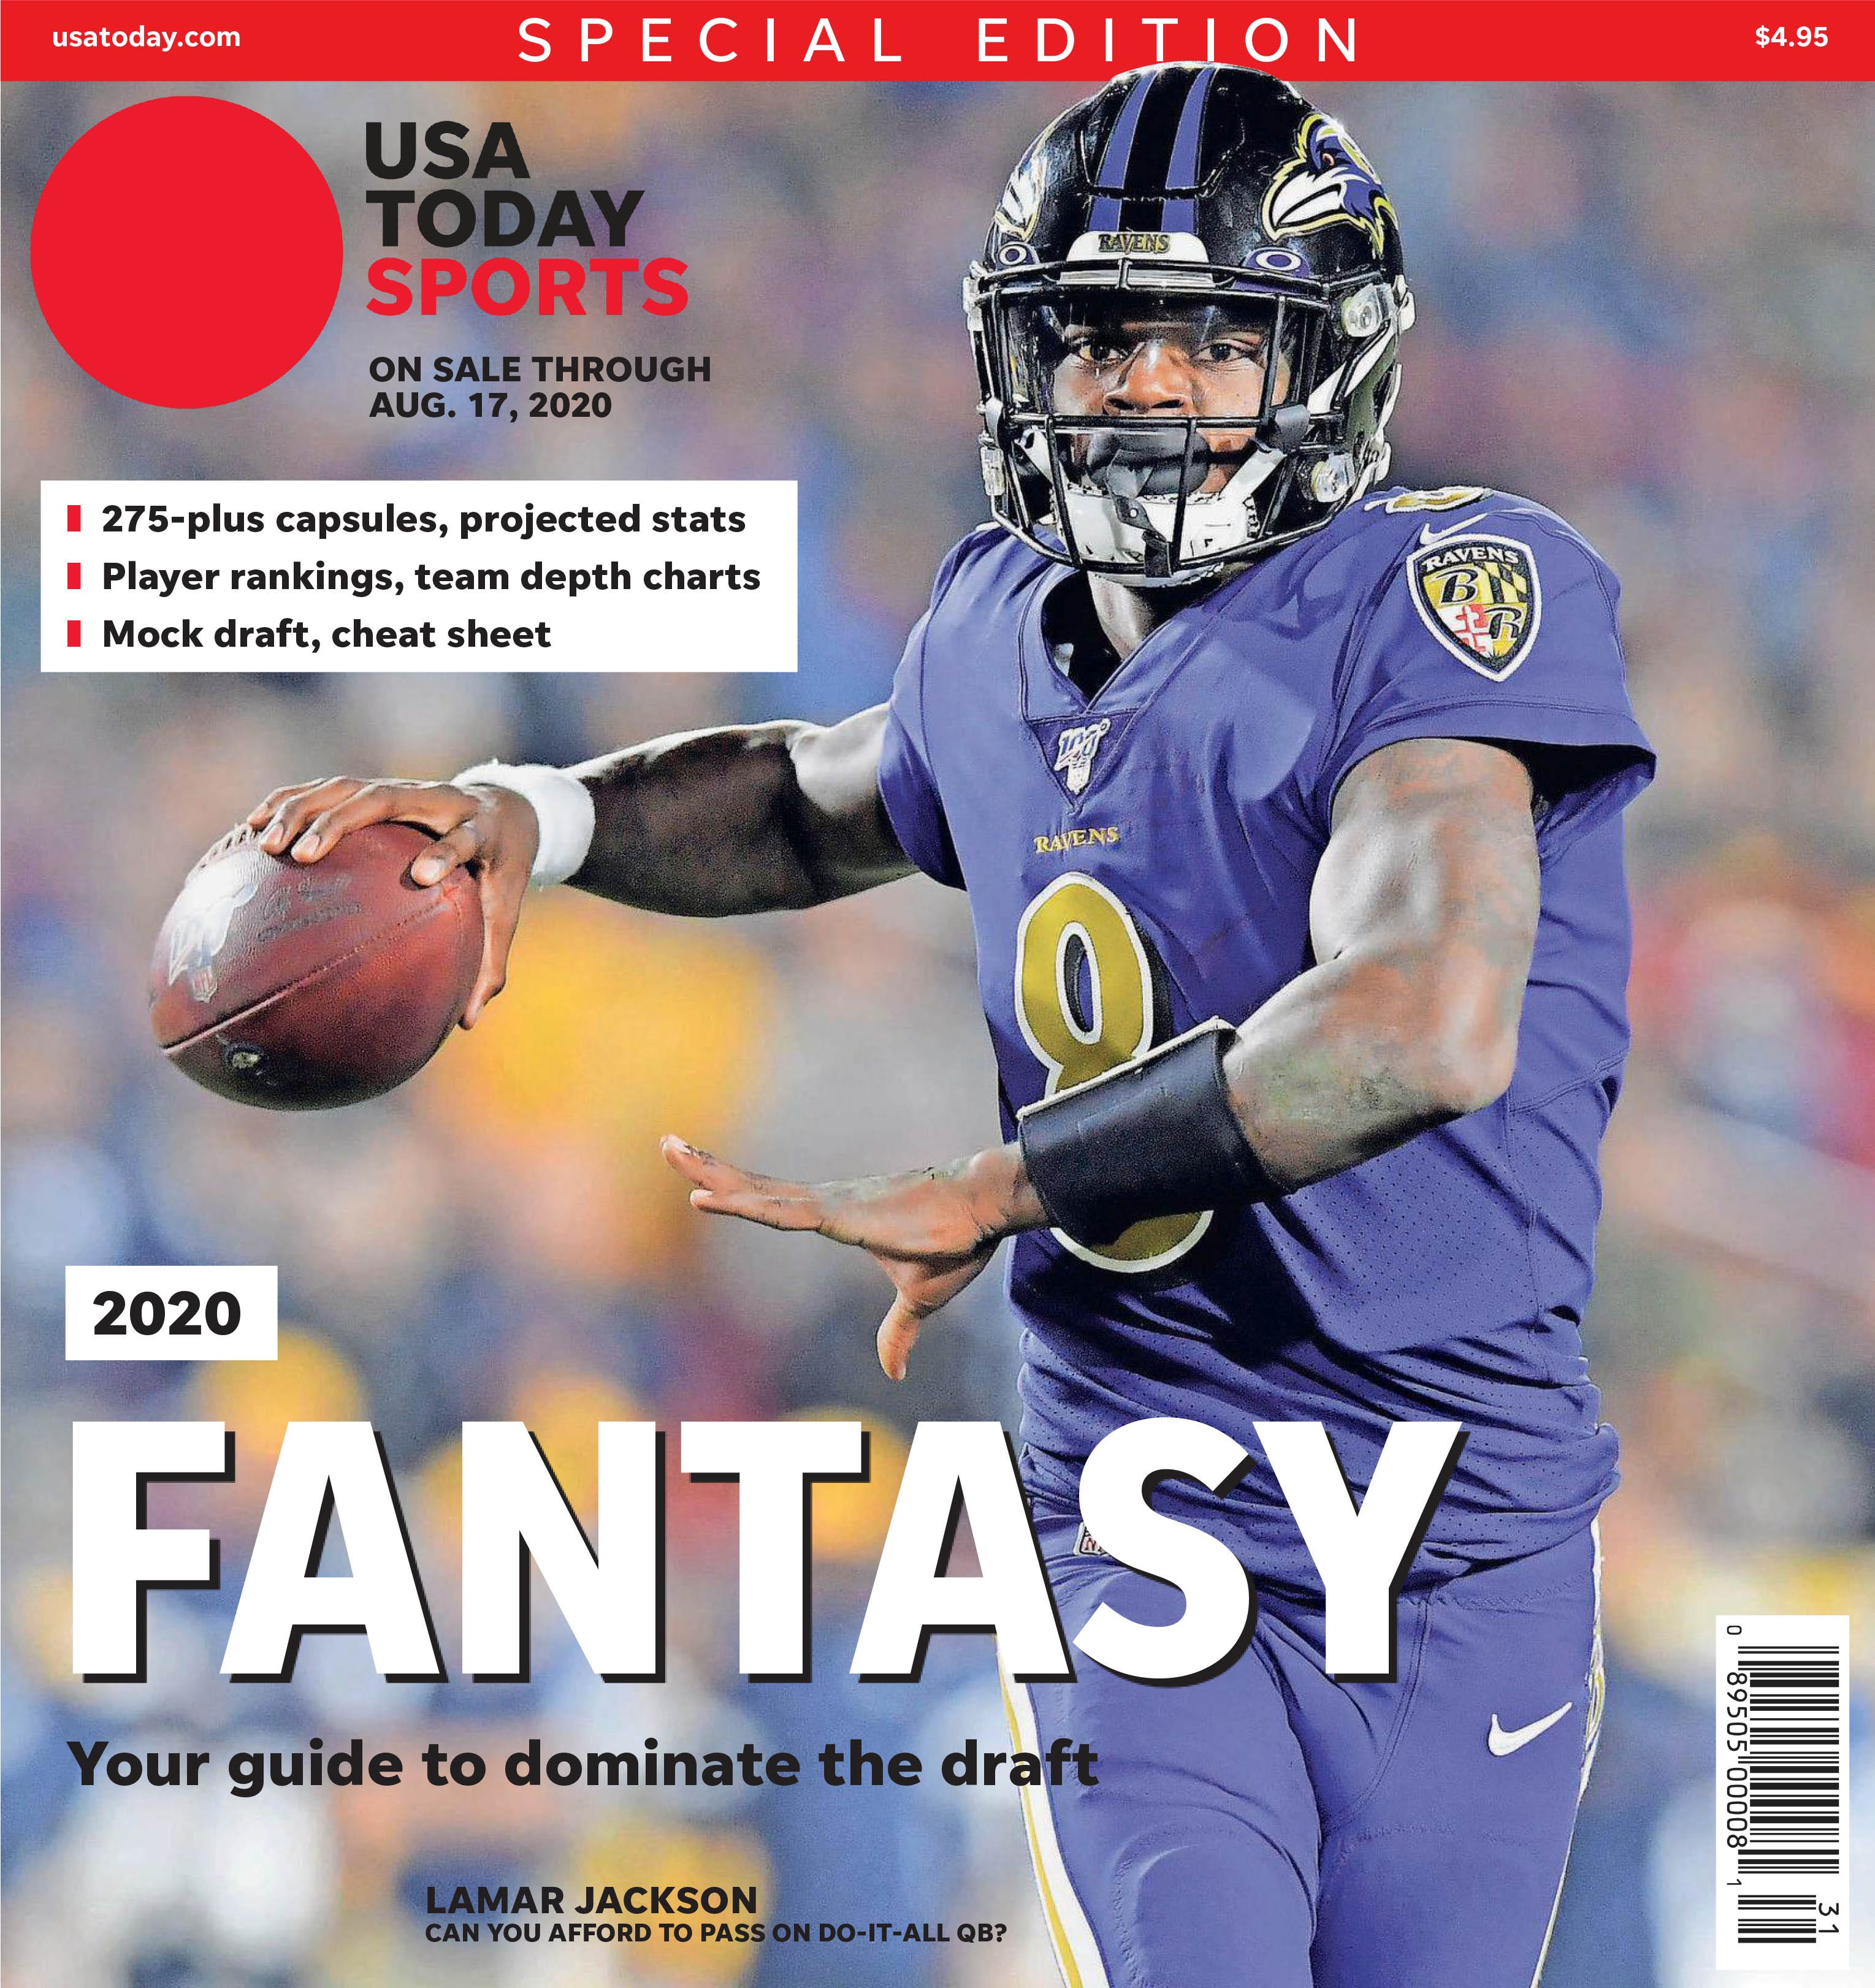 Top 200 players in fantasy football for the 2020 NFL season